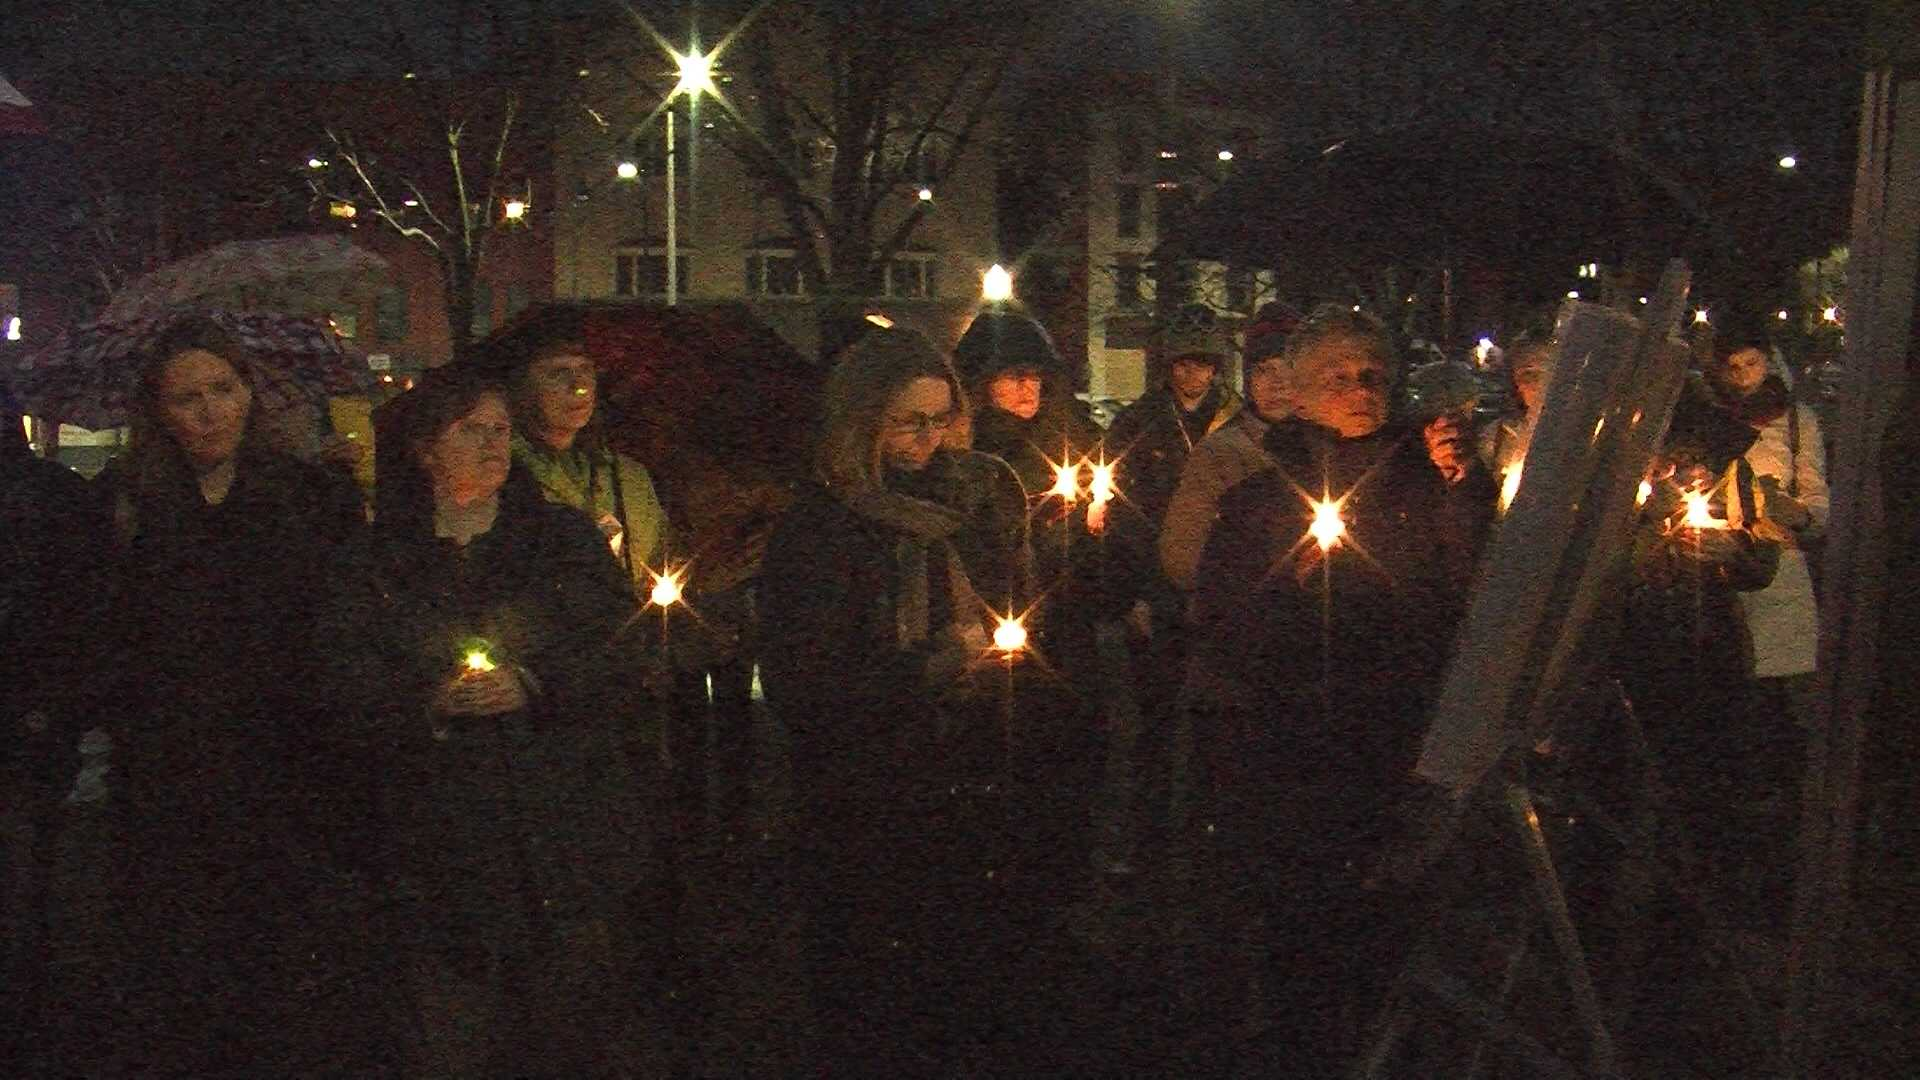 A group of Vermonters gather to remember victims of gun violence and to continue their call for political action.